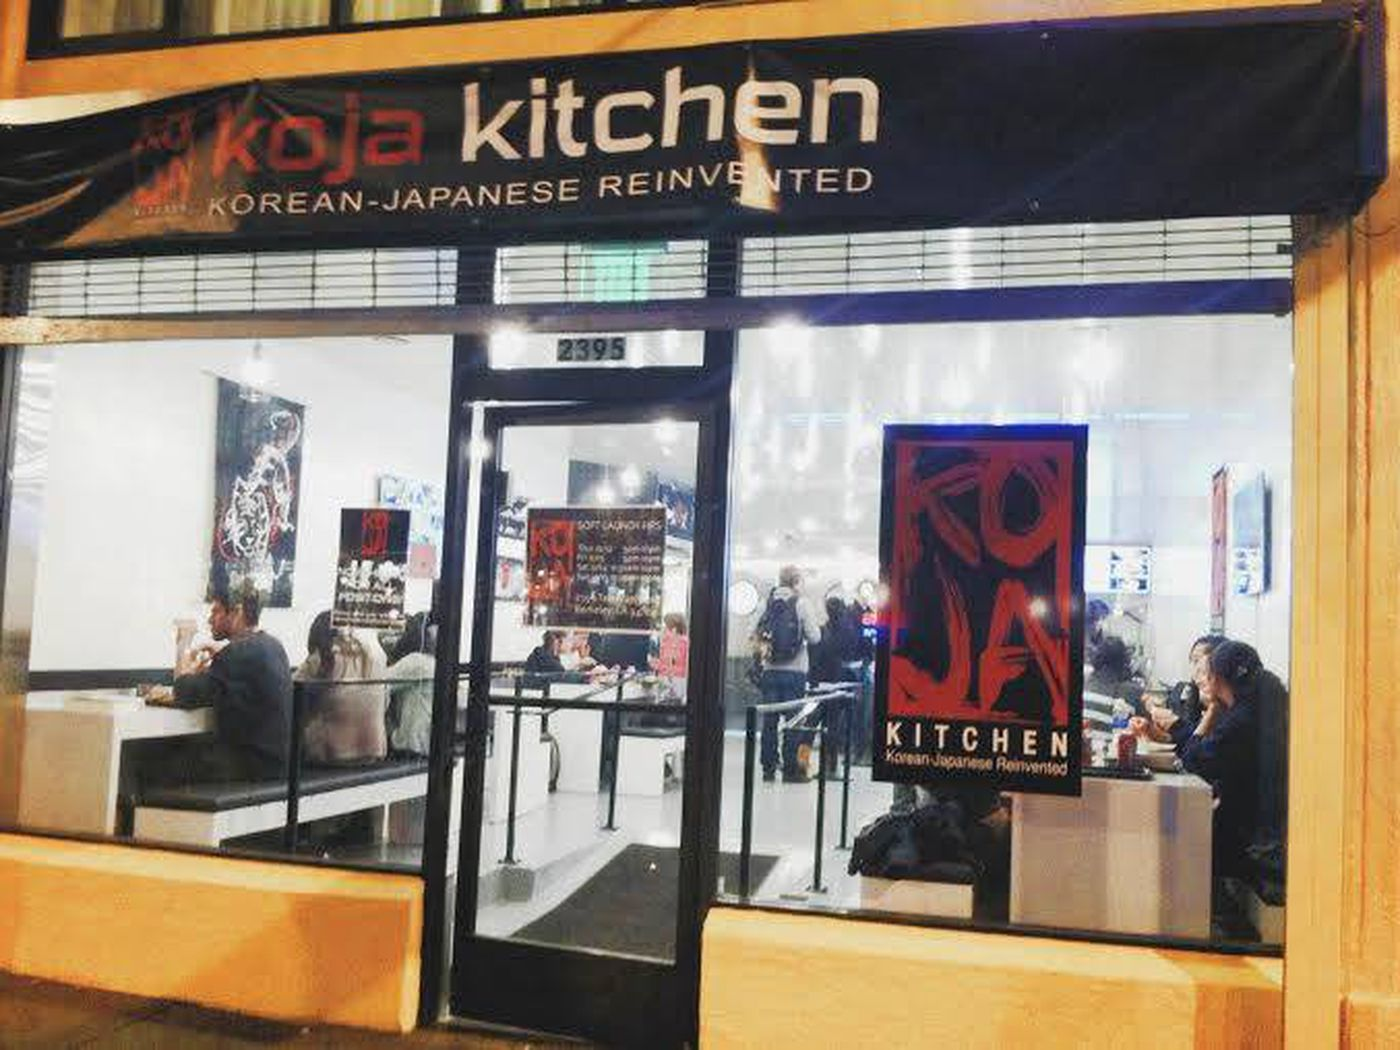 KoJa Kitchen, Asian Fusion in Berkeley - Eater SF